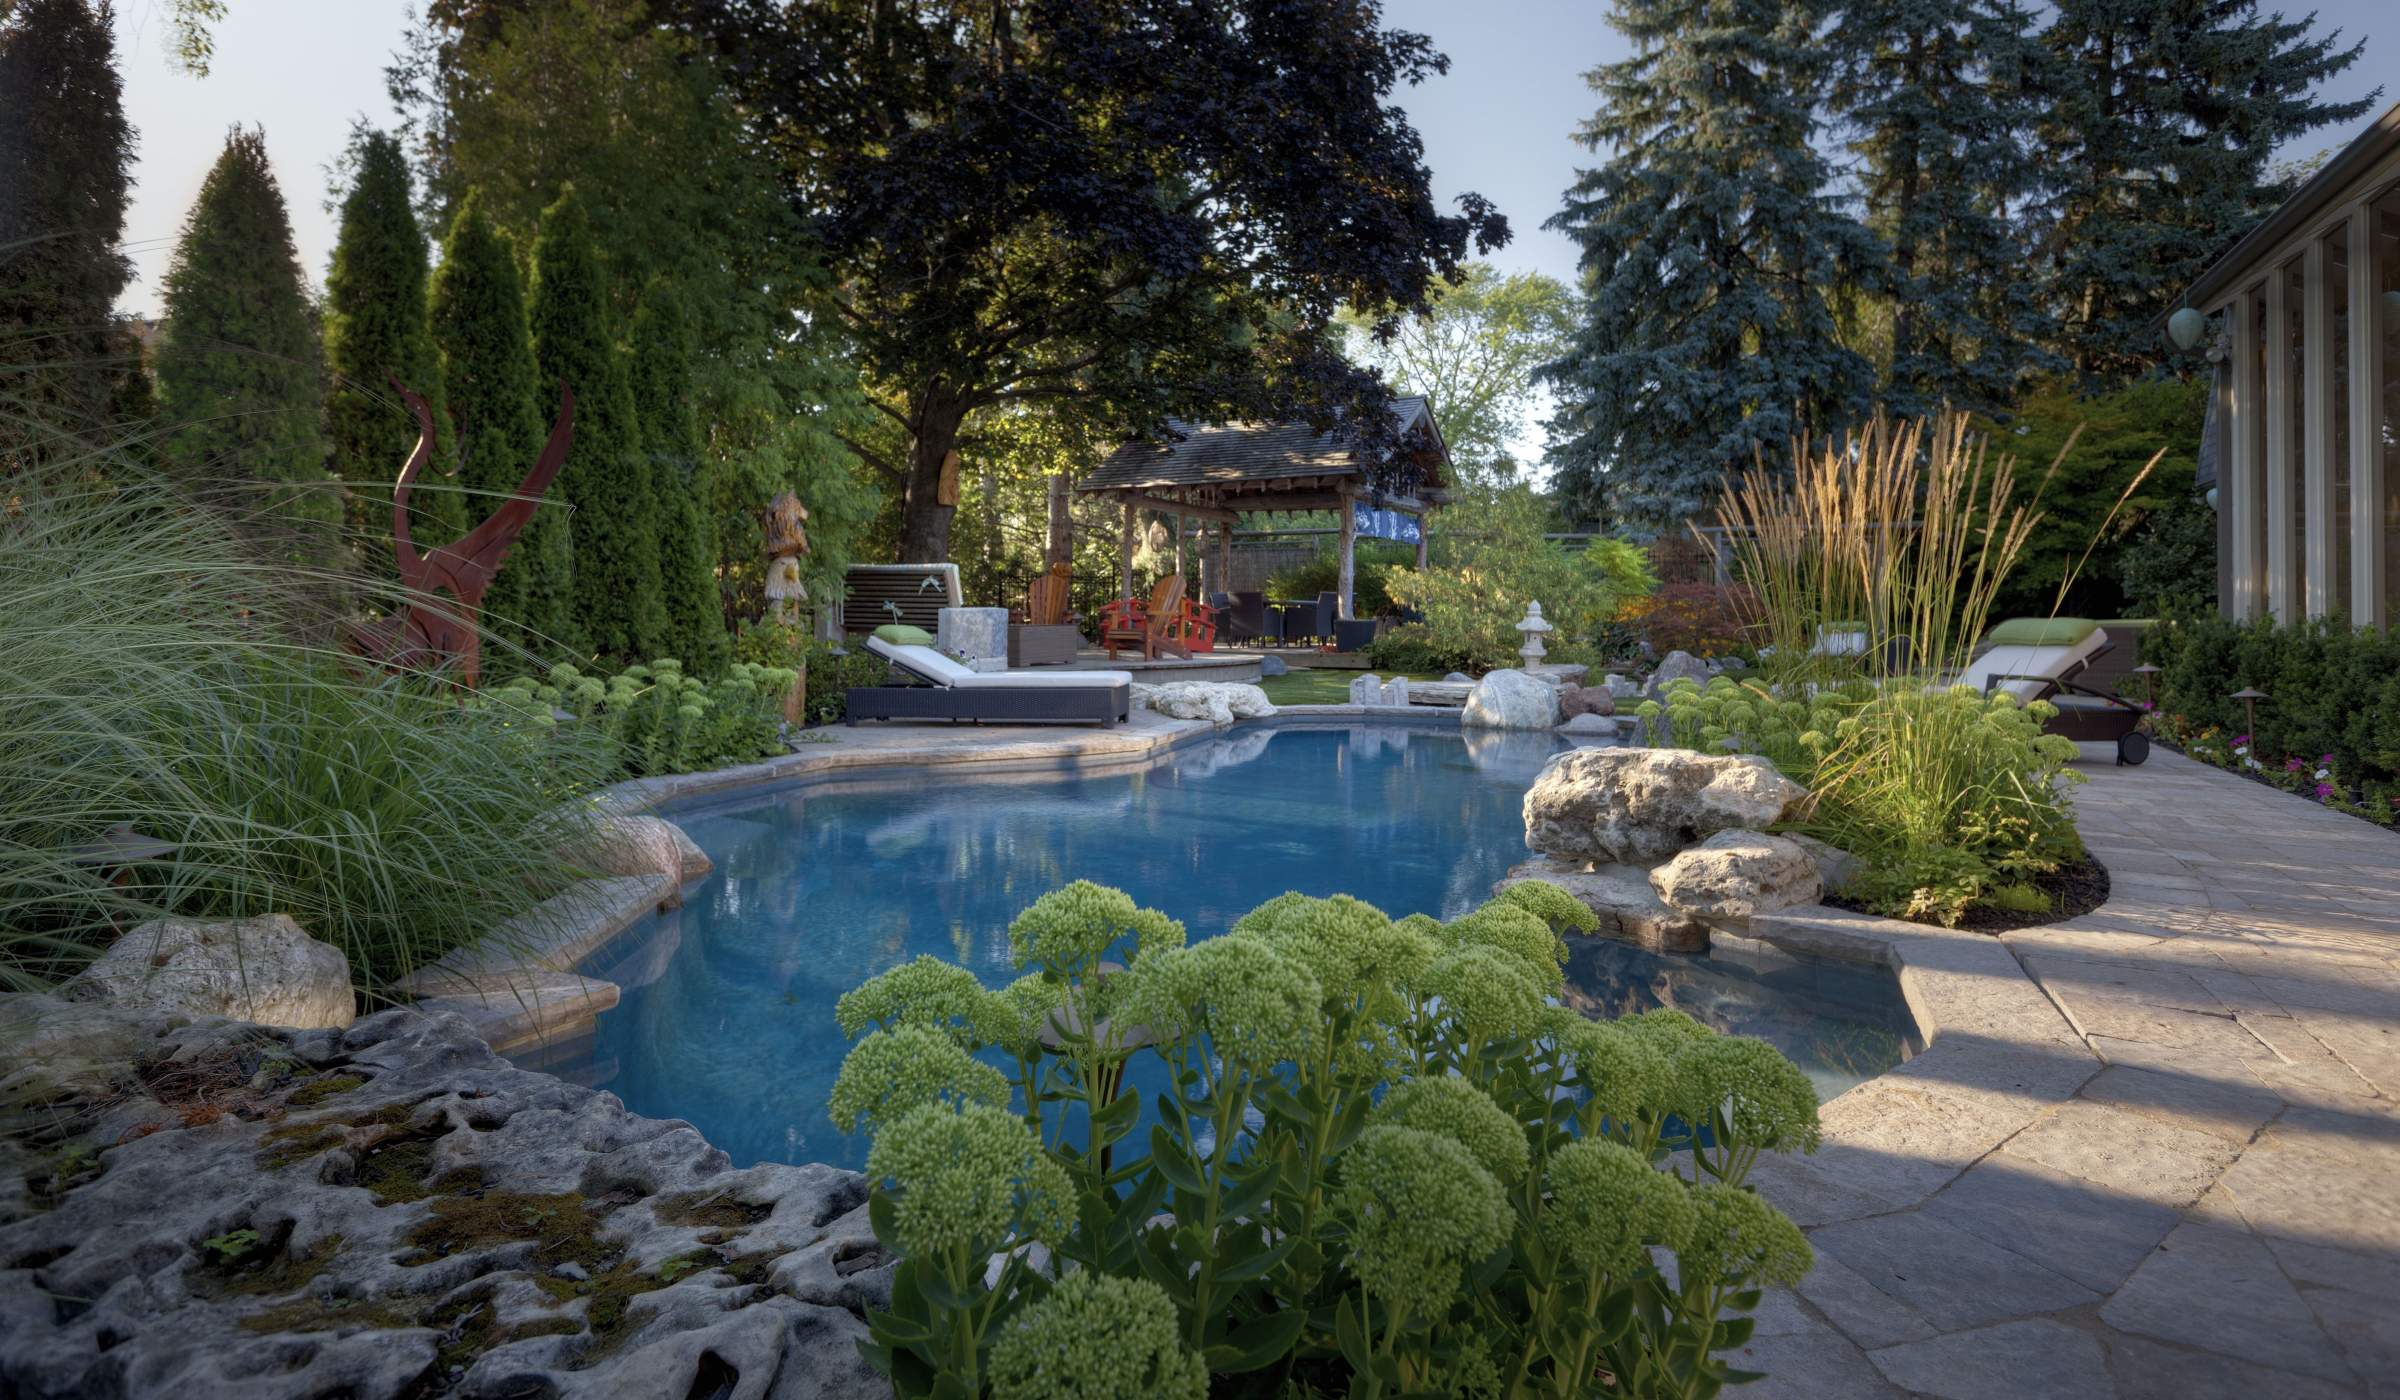 Landscaping betz pools for Award winning landscape architects